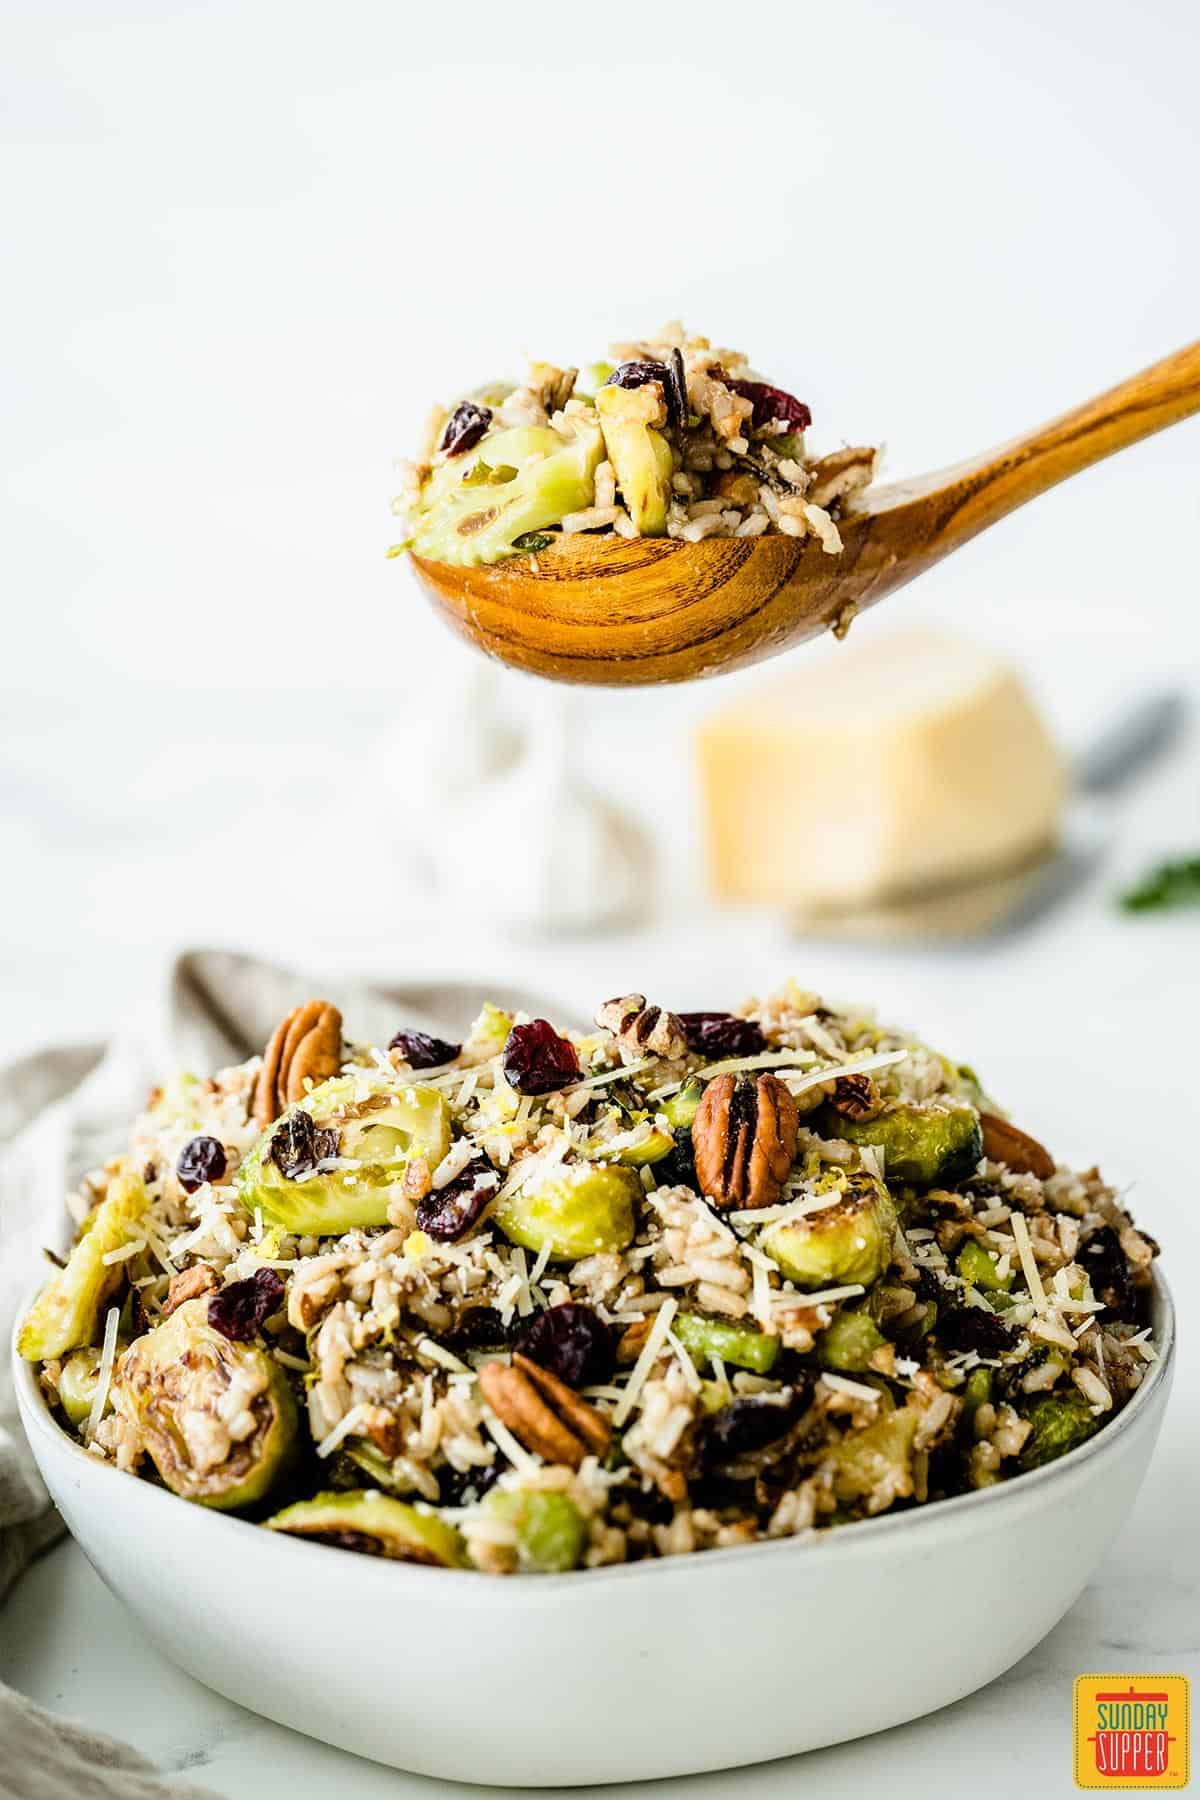 A spoonful of wild rice salad with brussels sprouts